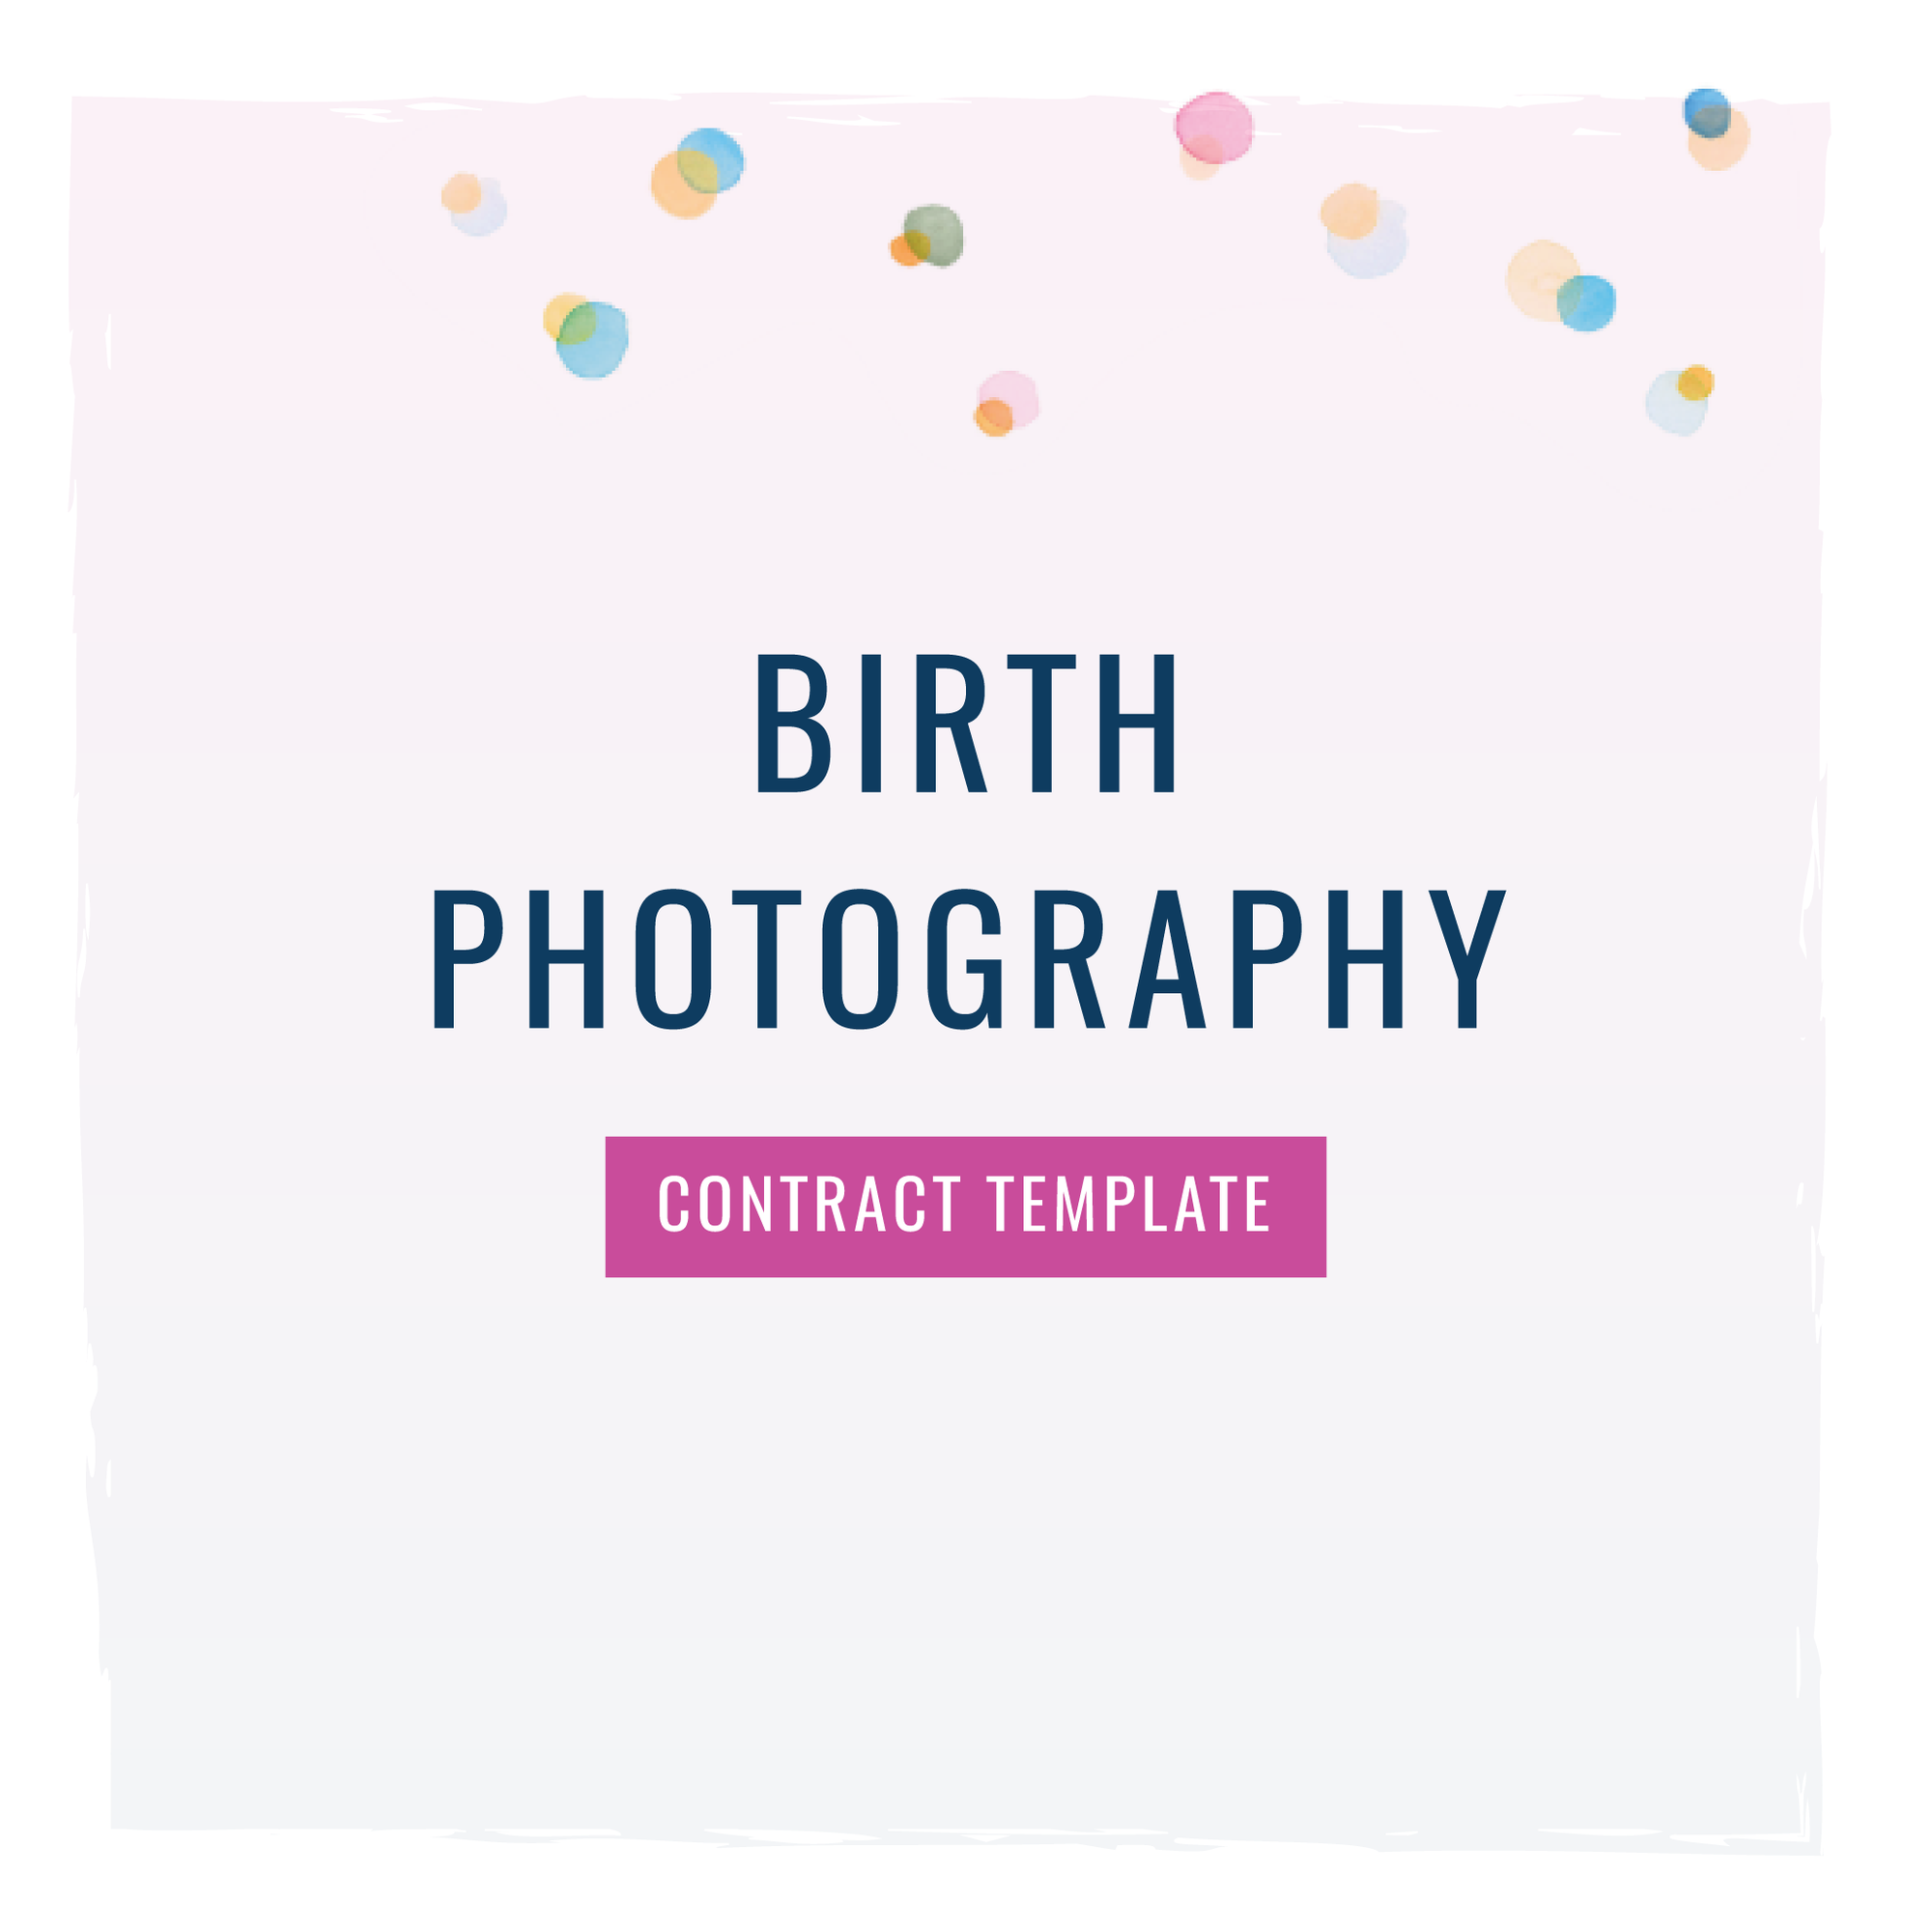 Birth photographer contract template the contract shop birth photographer contract template maxwellsz